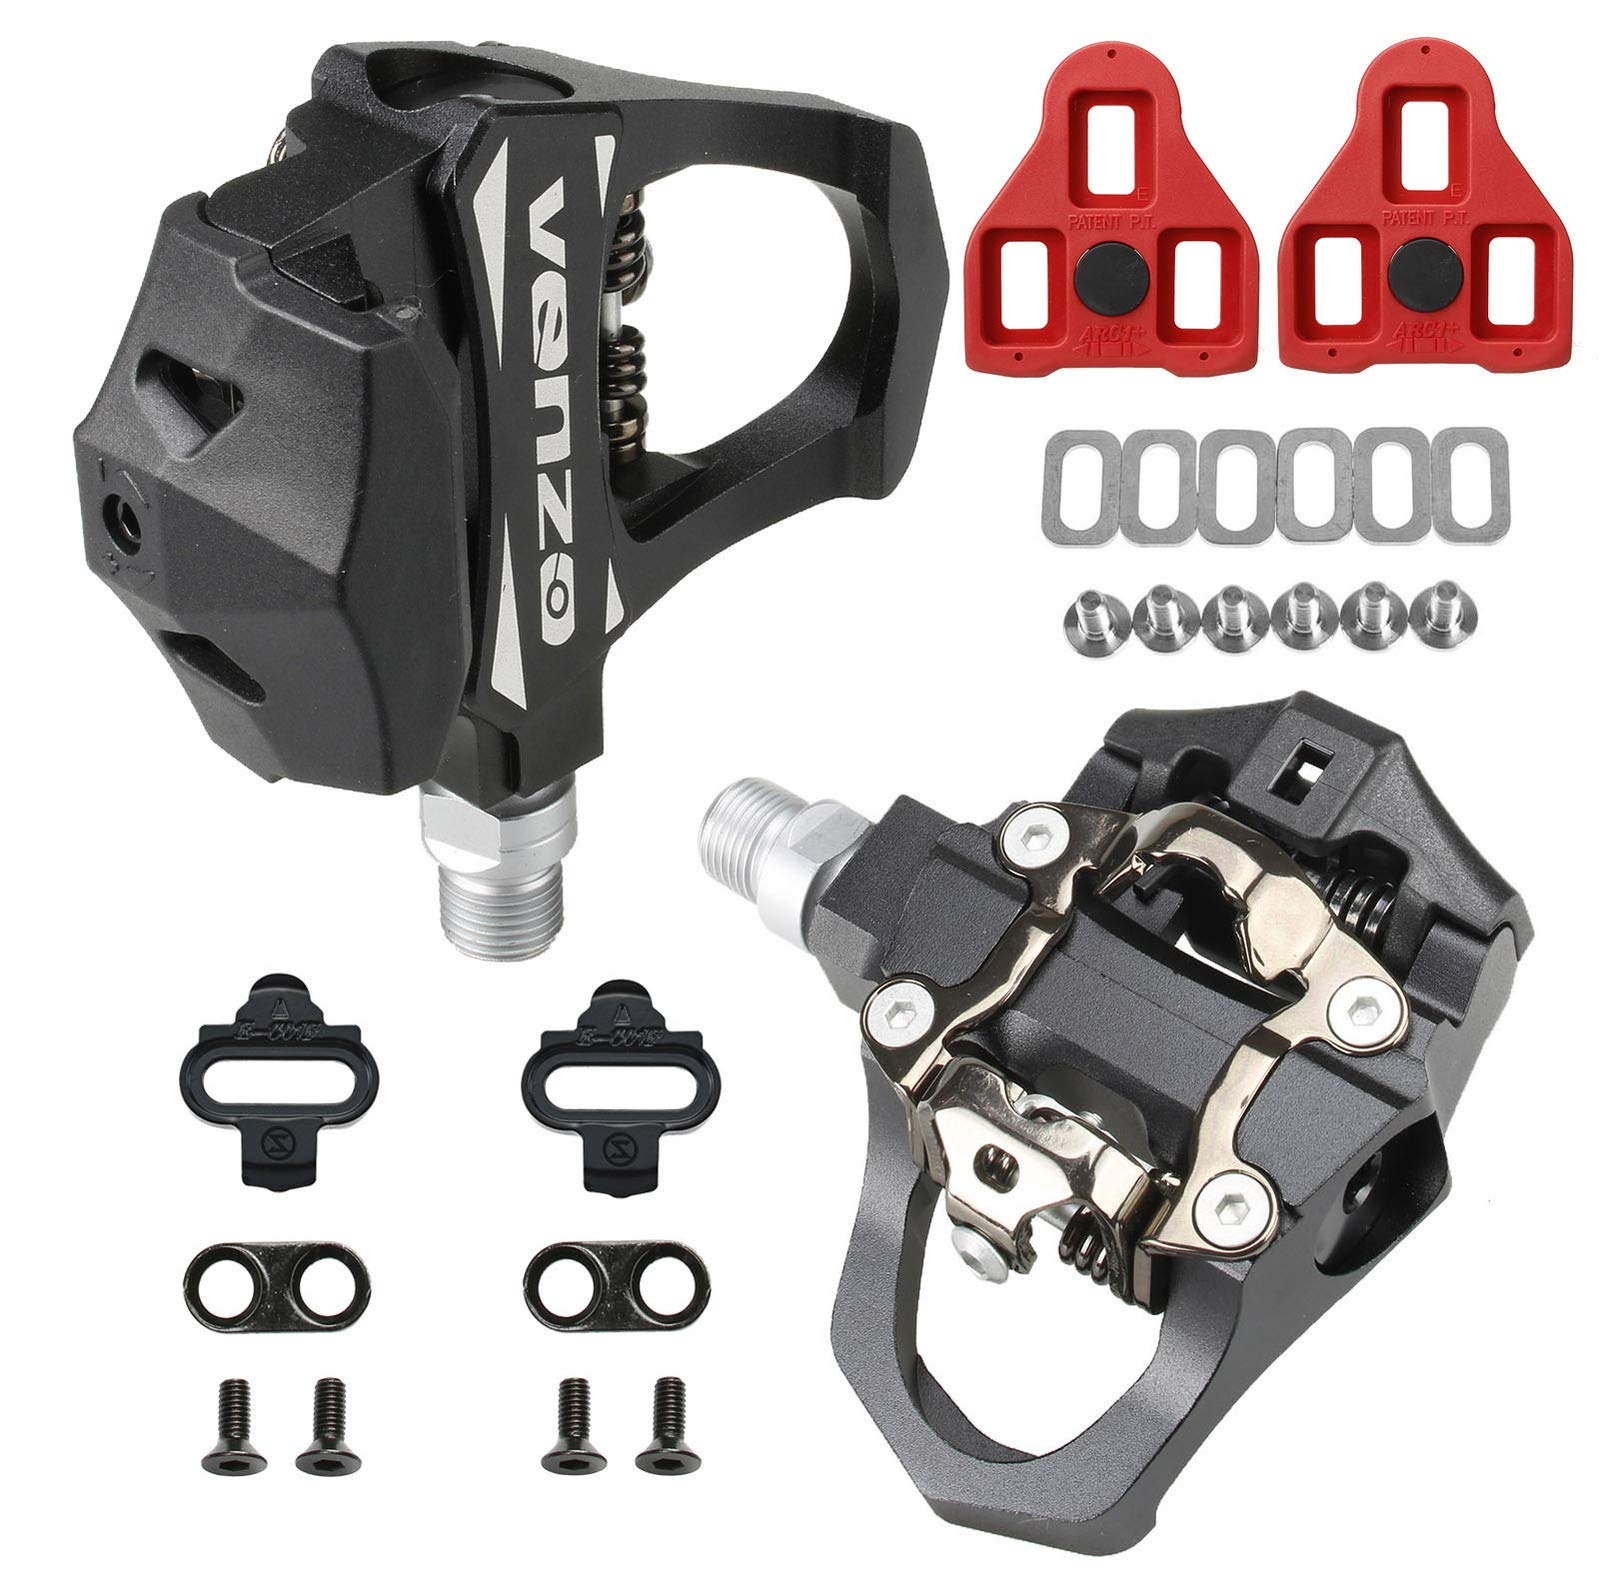 Venzo Sealed Fitness Exercise Indoor Bike CNC Pedals Compatible with – Look ARC Delta – Shimano SPD- Toe Clip or Cage…